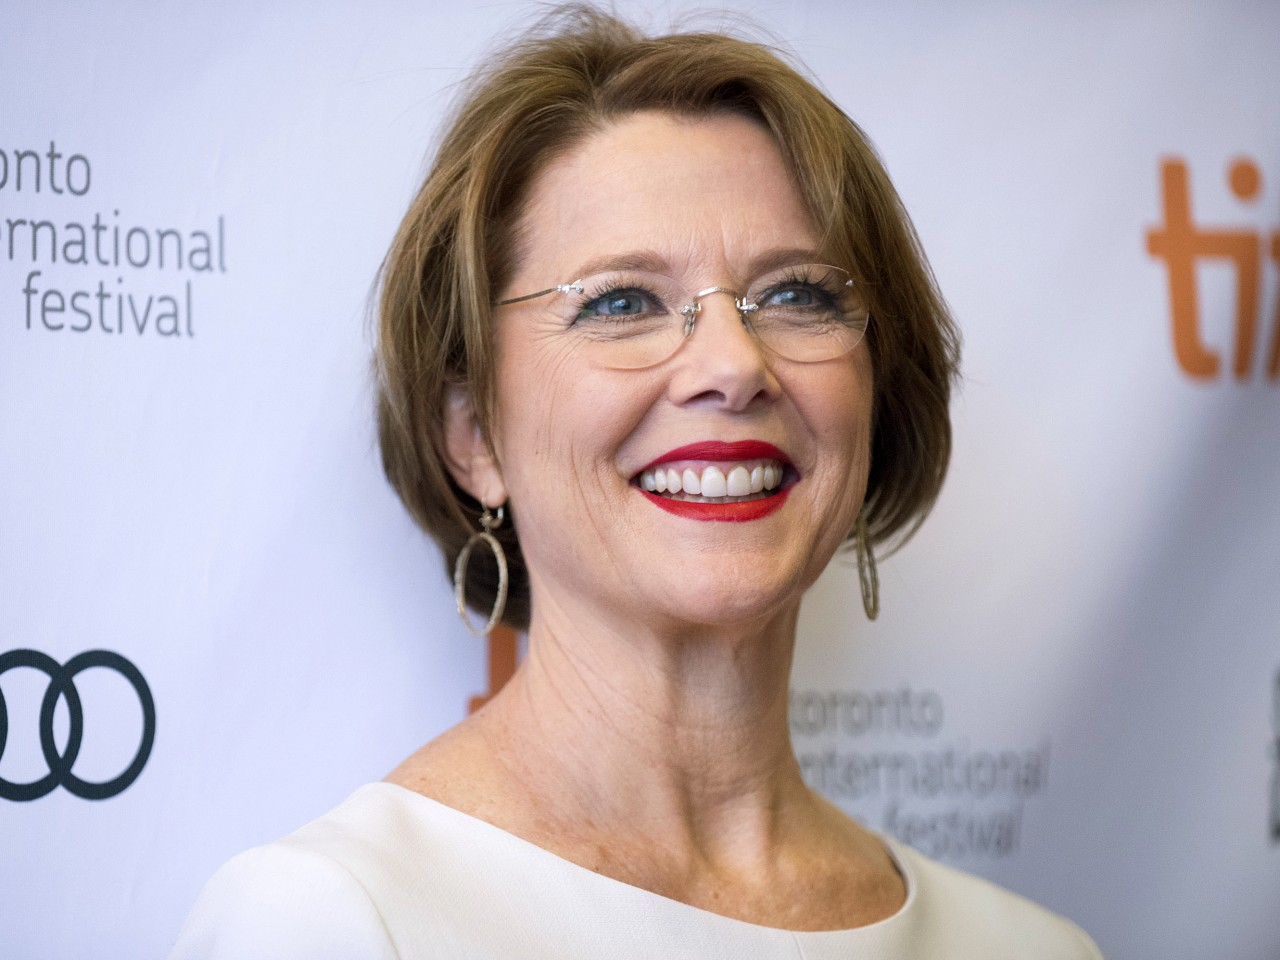 theater-annette-bening.jpeg-1280x960